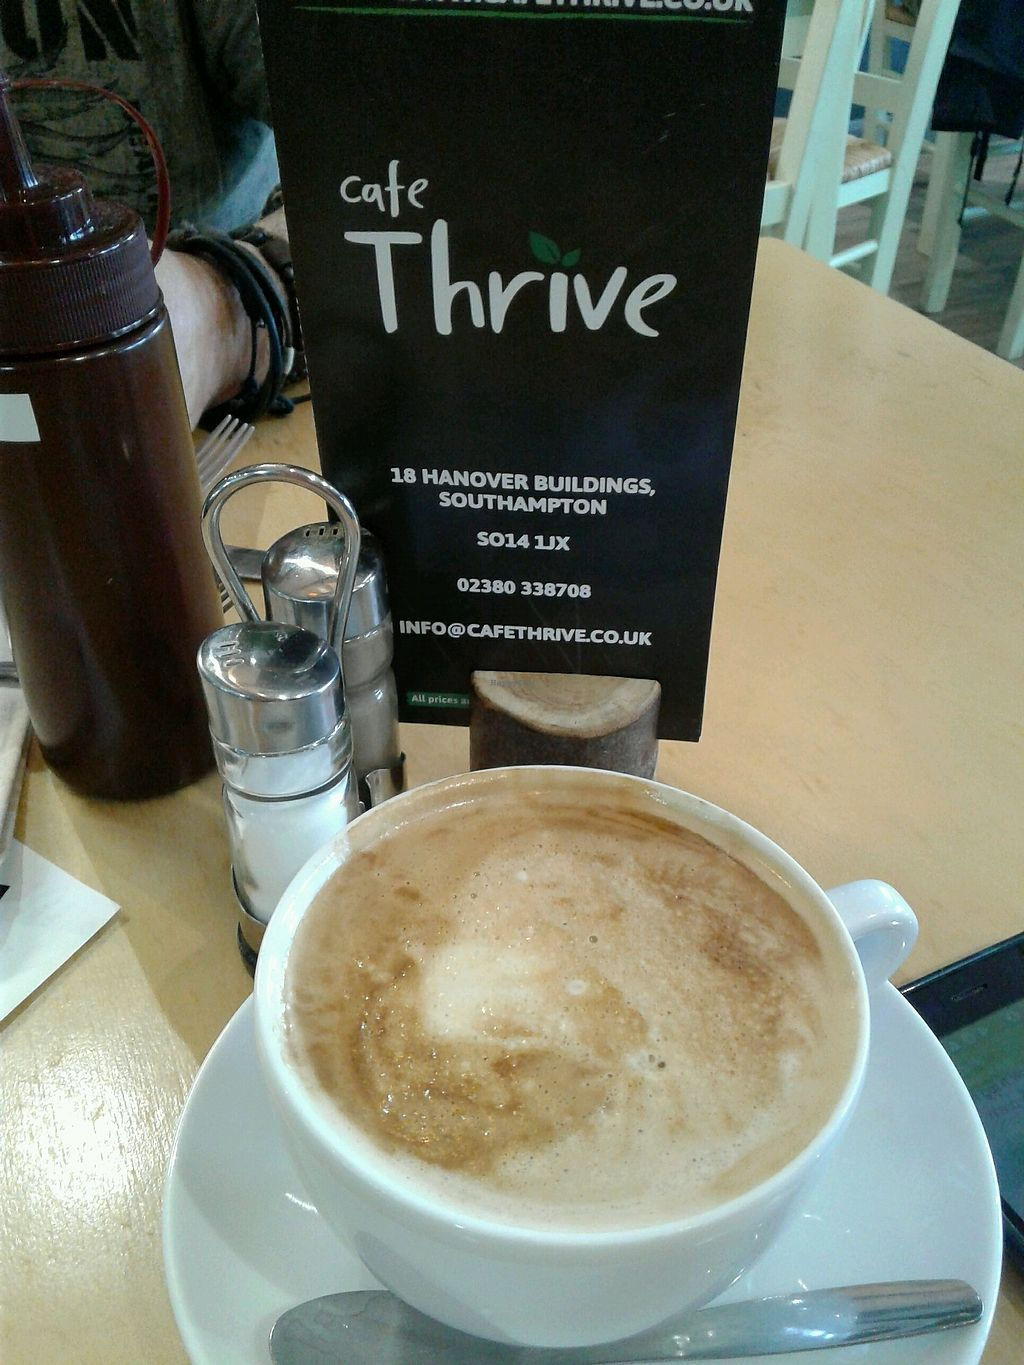 "Photo of Cafe Thrive  by <a href=""/members/profile/JuliaHubbard"">JuliaHubbard</a> <br/>soya latte <br/> March 12, 2018  - <a href='/contact/abuse/image/98116/369781'>Report</a>"